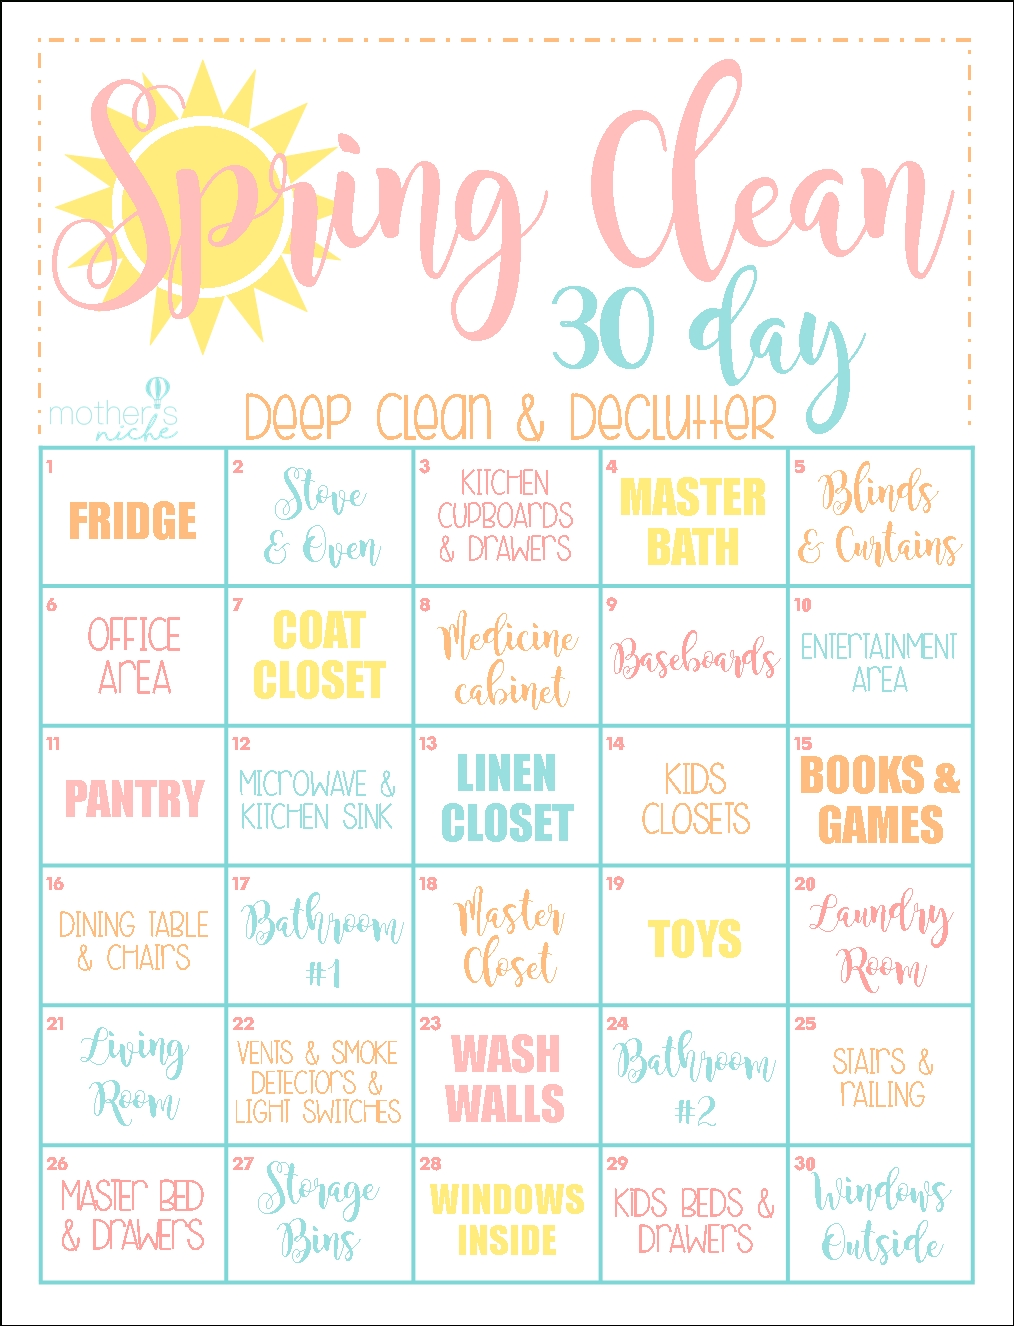 The 30 Day Clean Home Challenge: Spring Clean Up Printable